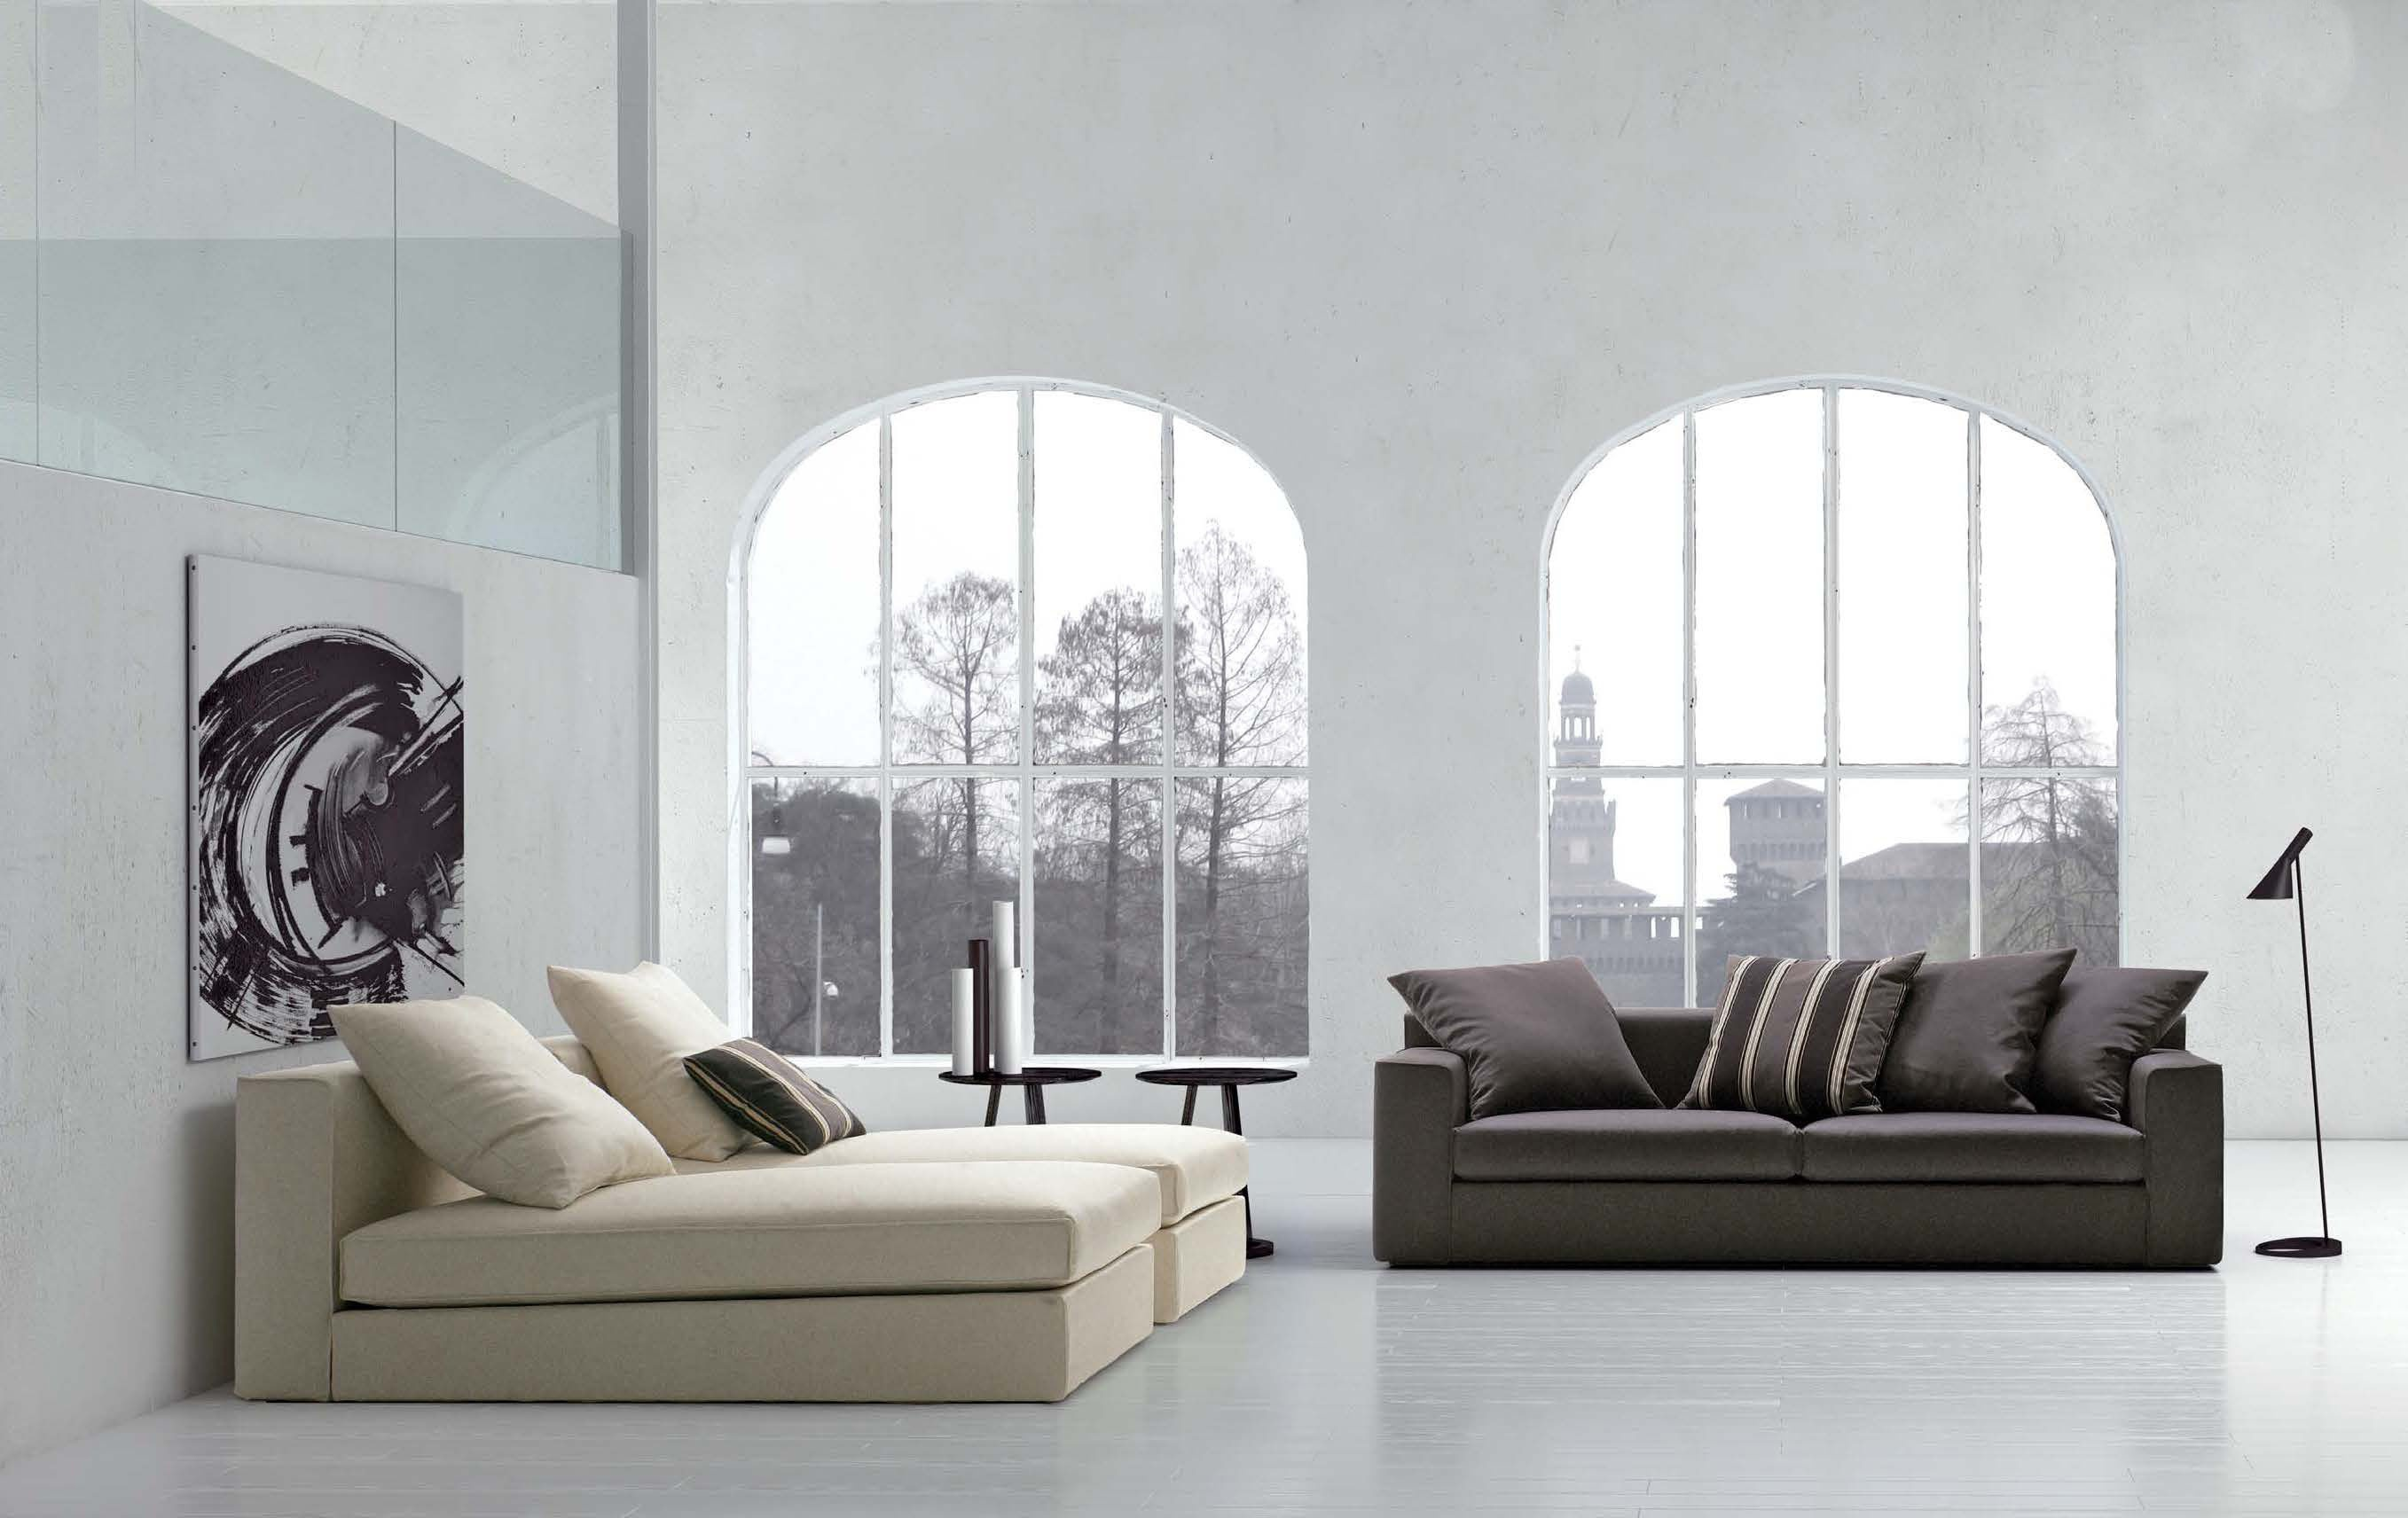 Modular sofa hudson asnaghi made in italy luxury for Sofa hudson